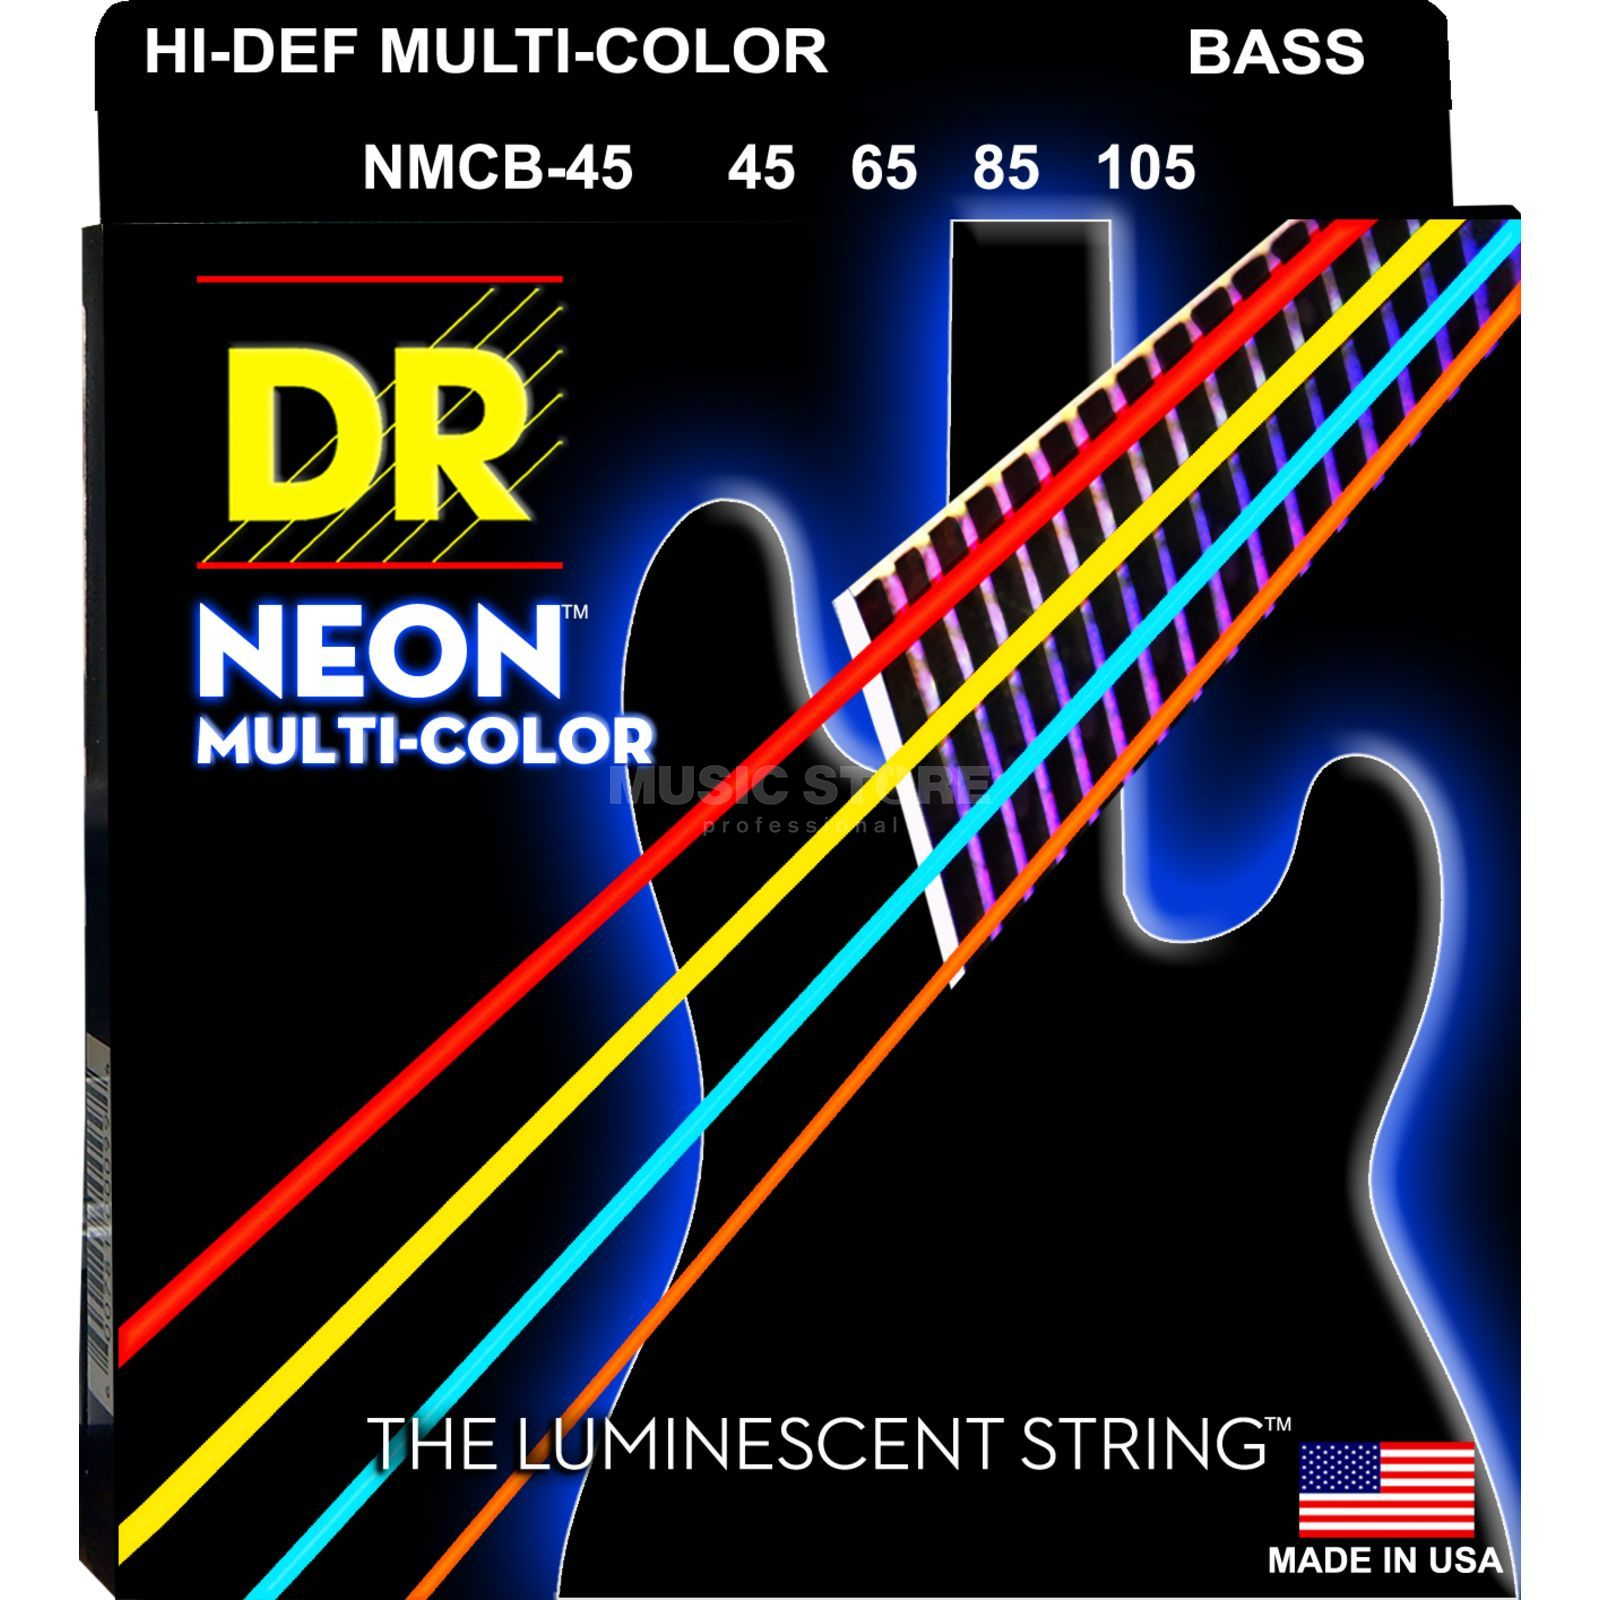 DR 5er Bass 45-105 Hi-Def Neon Multi Color Neon MCB-45 Product Image